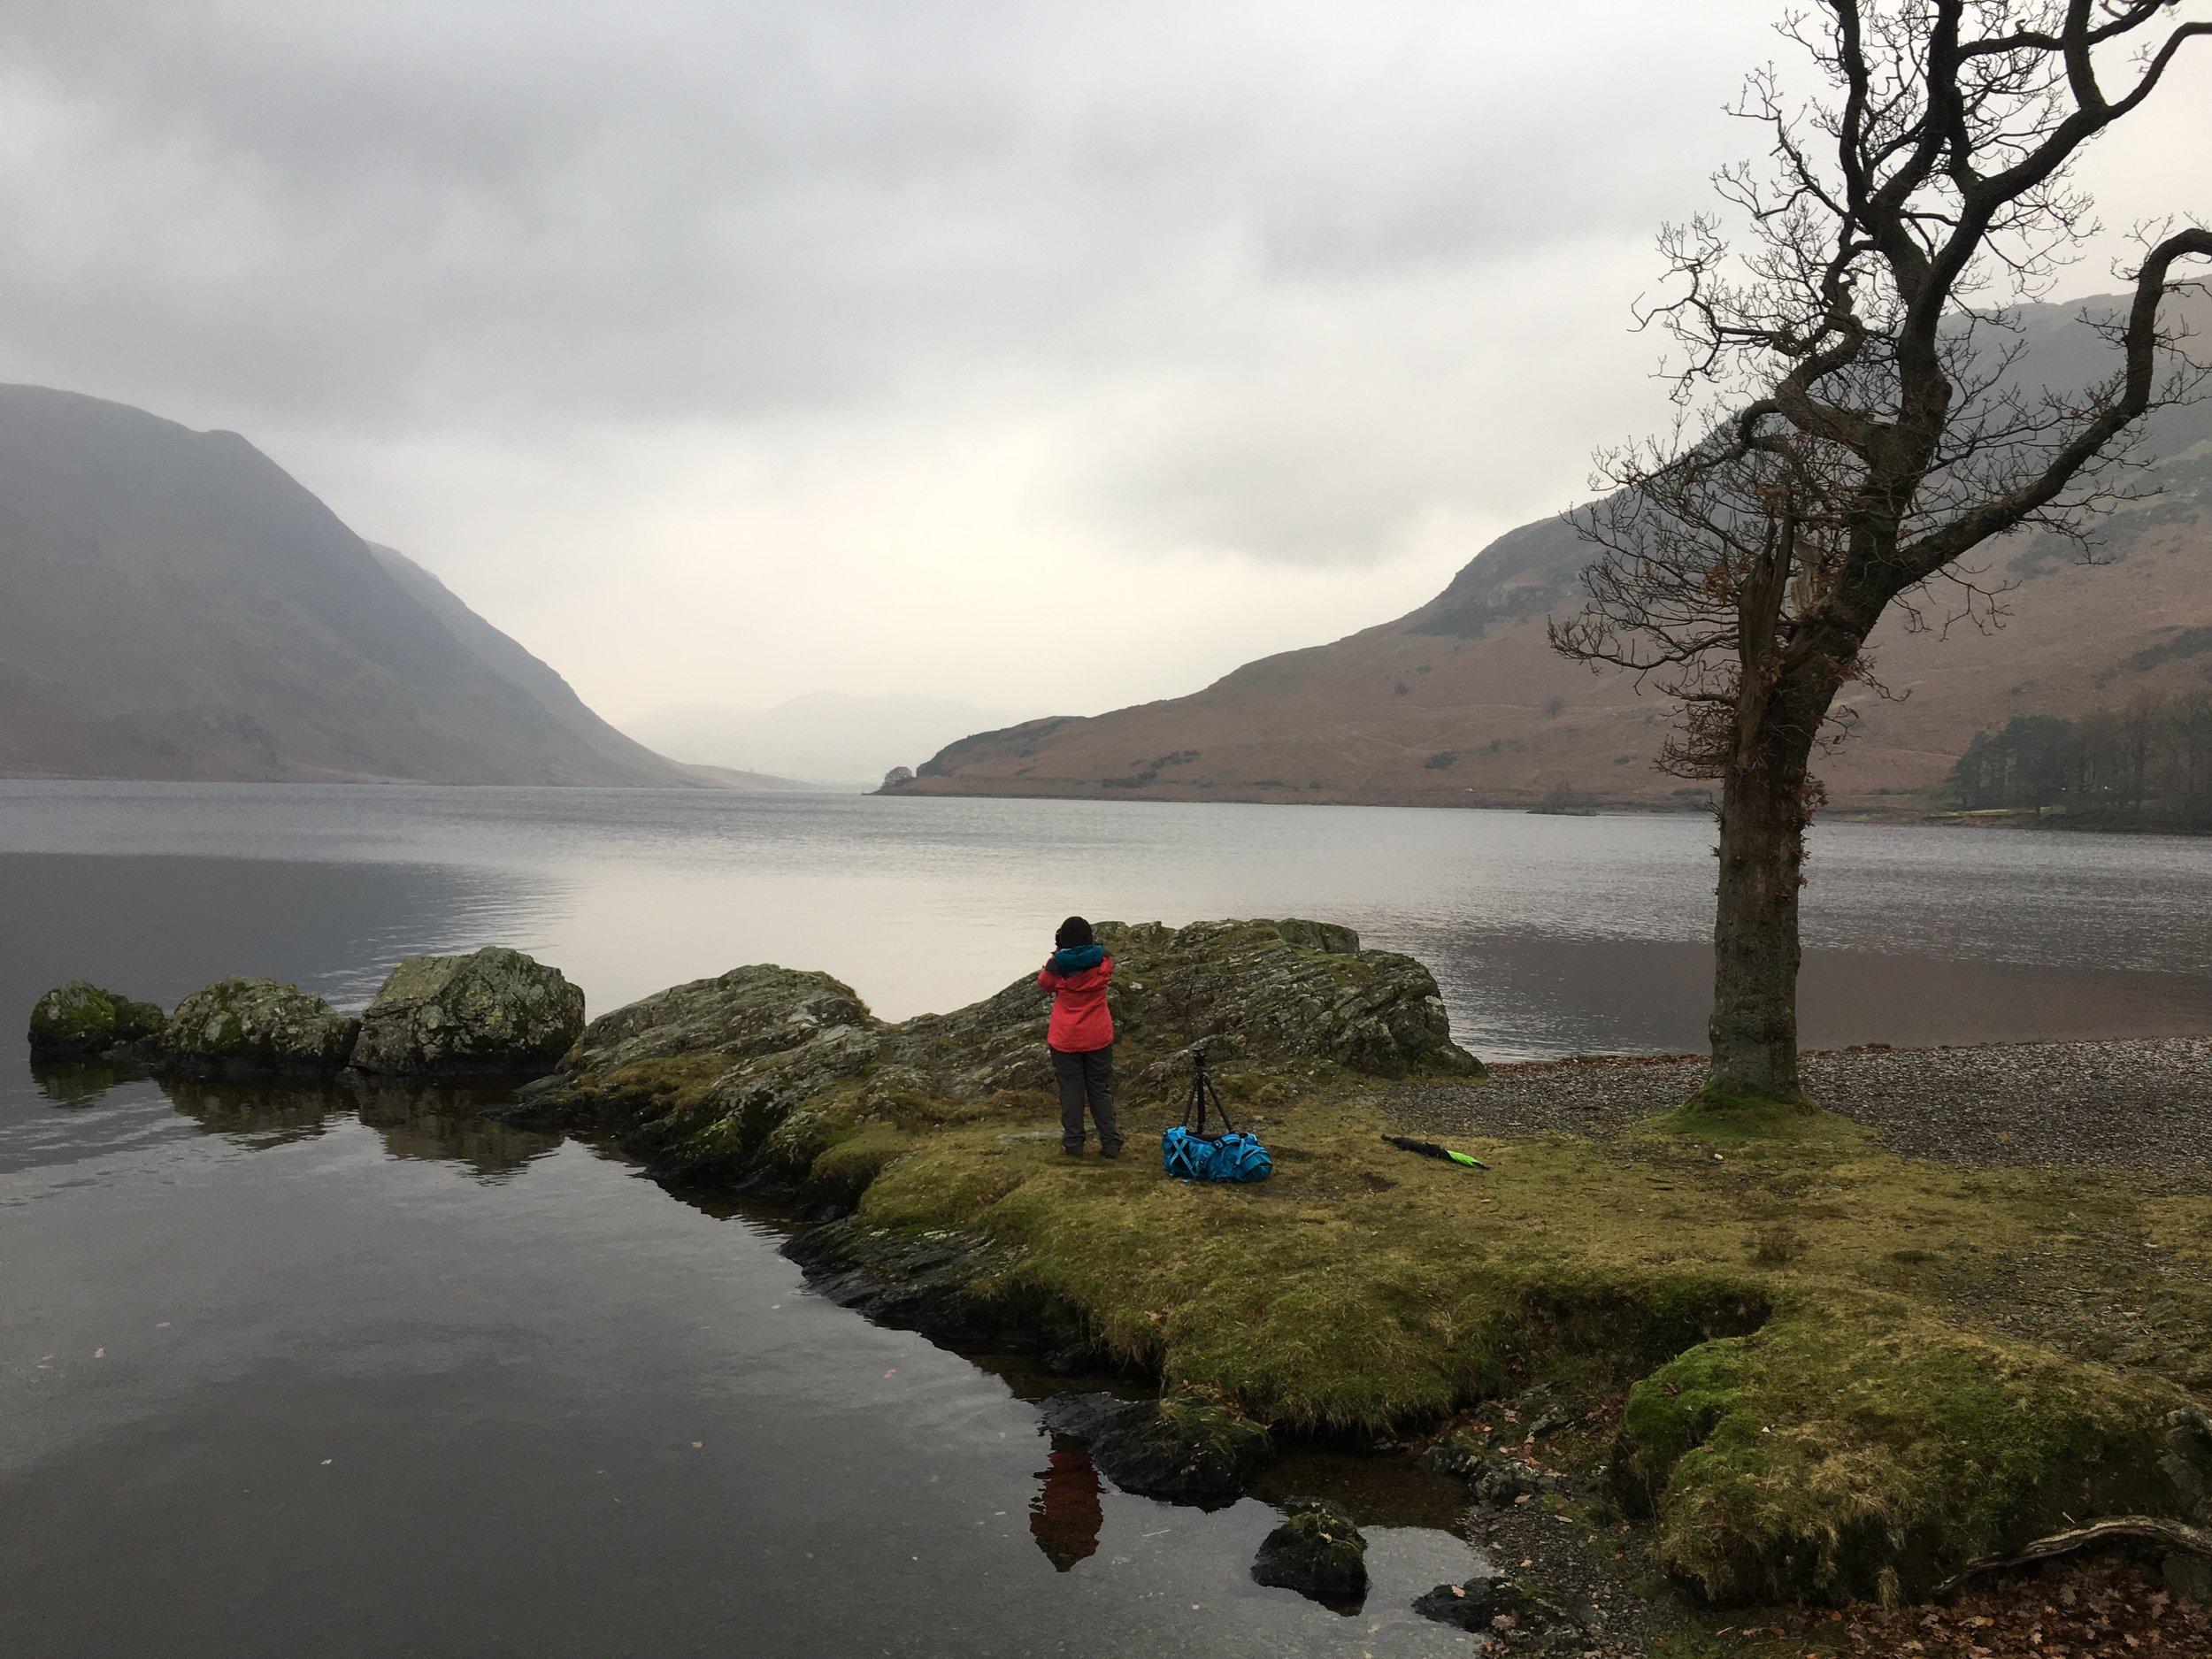 Tien by a very moody Crummock Water just before the heavens opened. We retreated for a nice Hot chocolate...